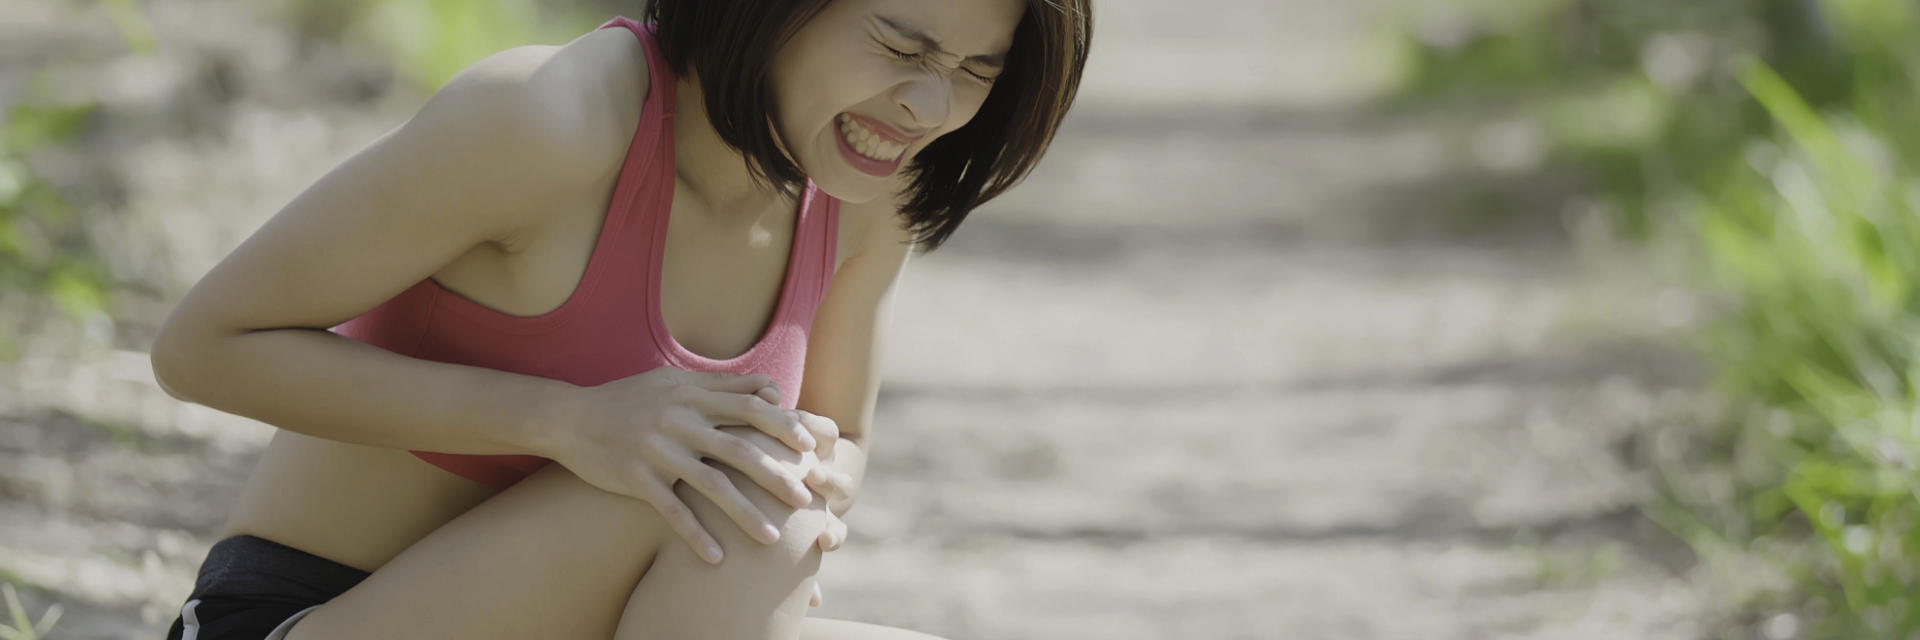 An injured sportswoman with severe knee pain touching the painful knee